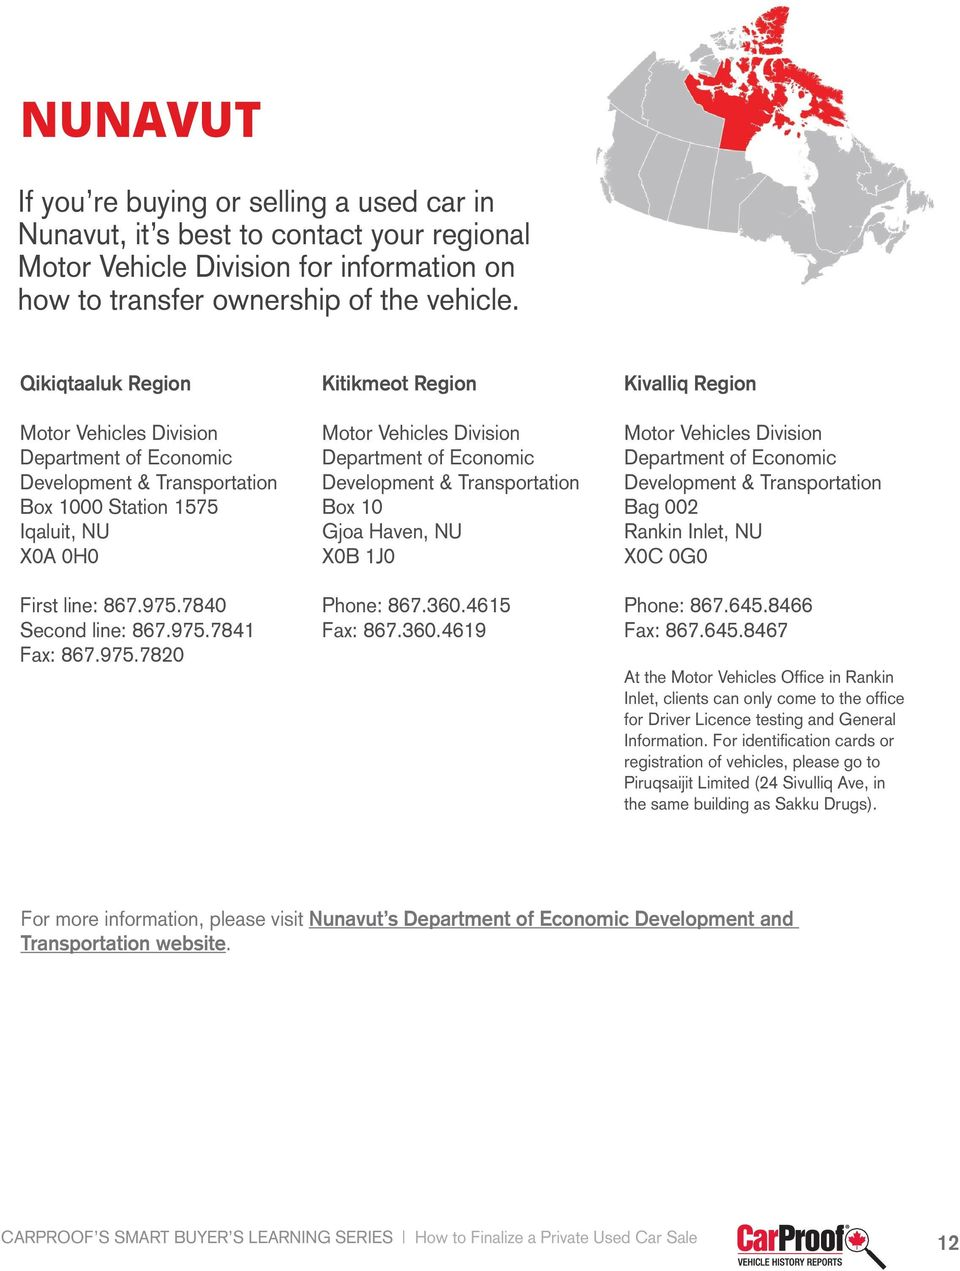 975.7820 Kitikmeot Region Motor Vehicles Division Department of Economic Development & Transportation Box 10 Gjoa Haven, NU X0B 1J0 Phone: 867.360.